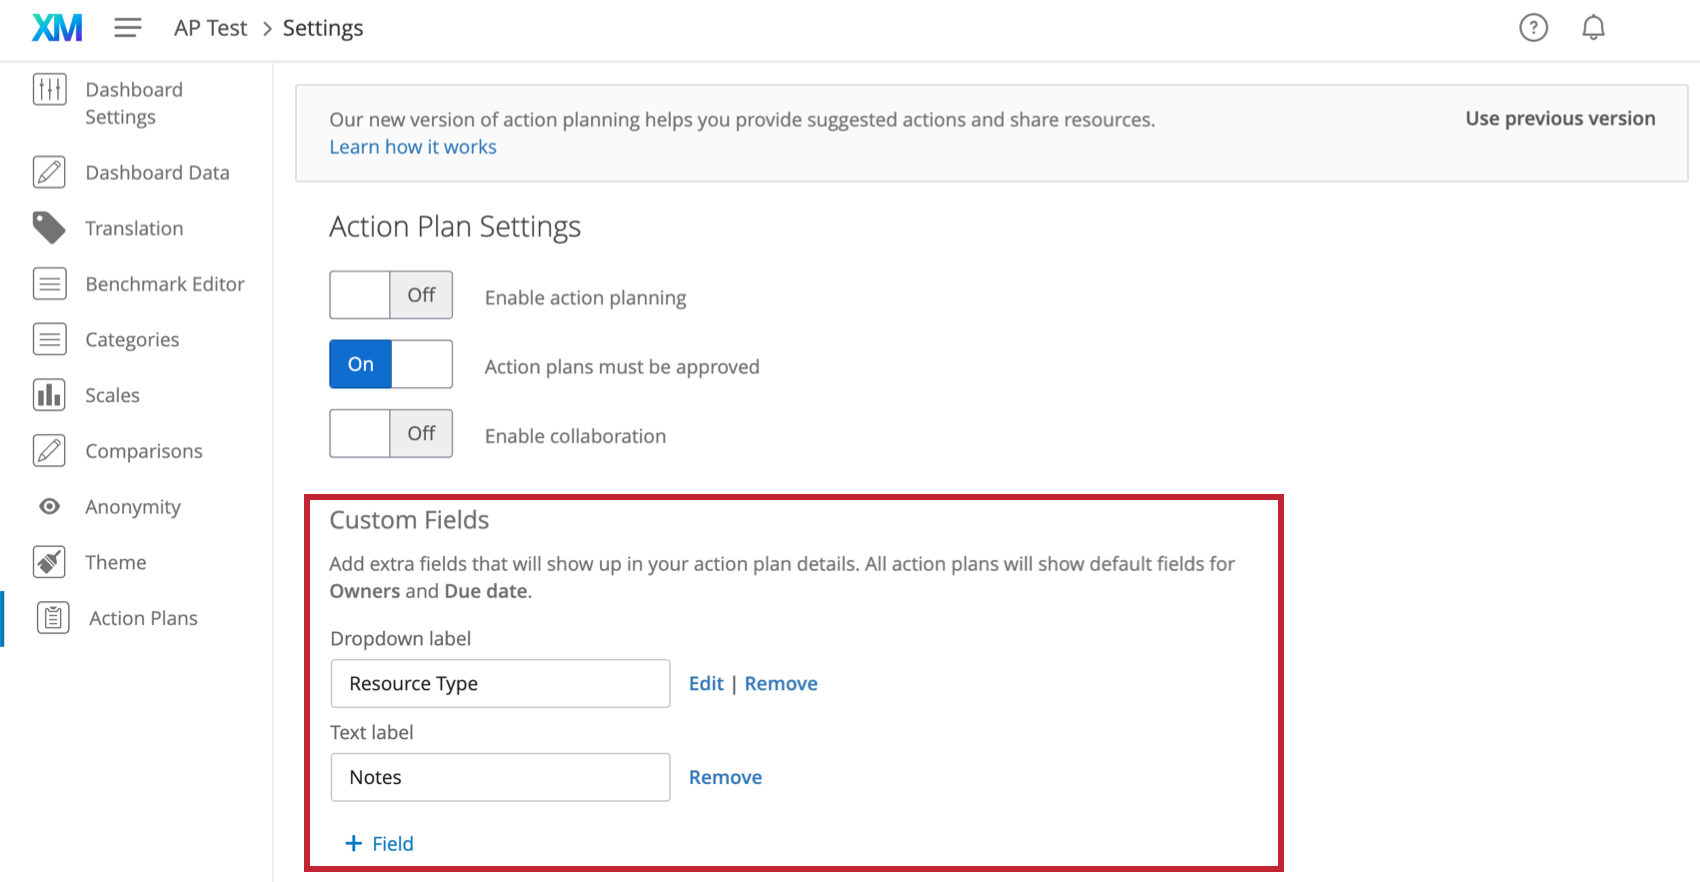 In action plans section of dashboard settings, section for custom fields